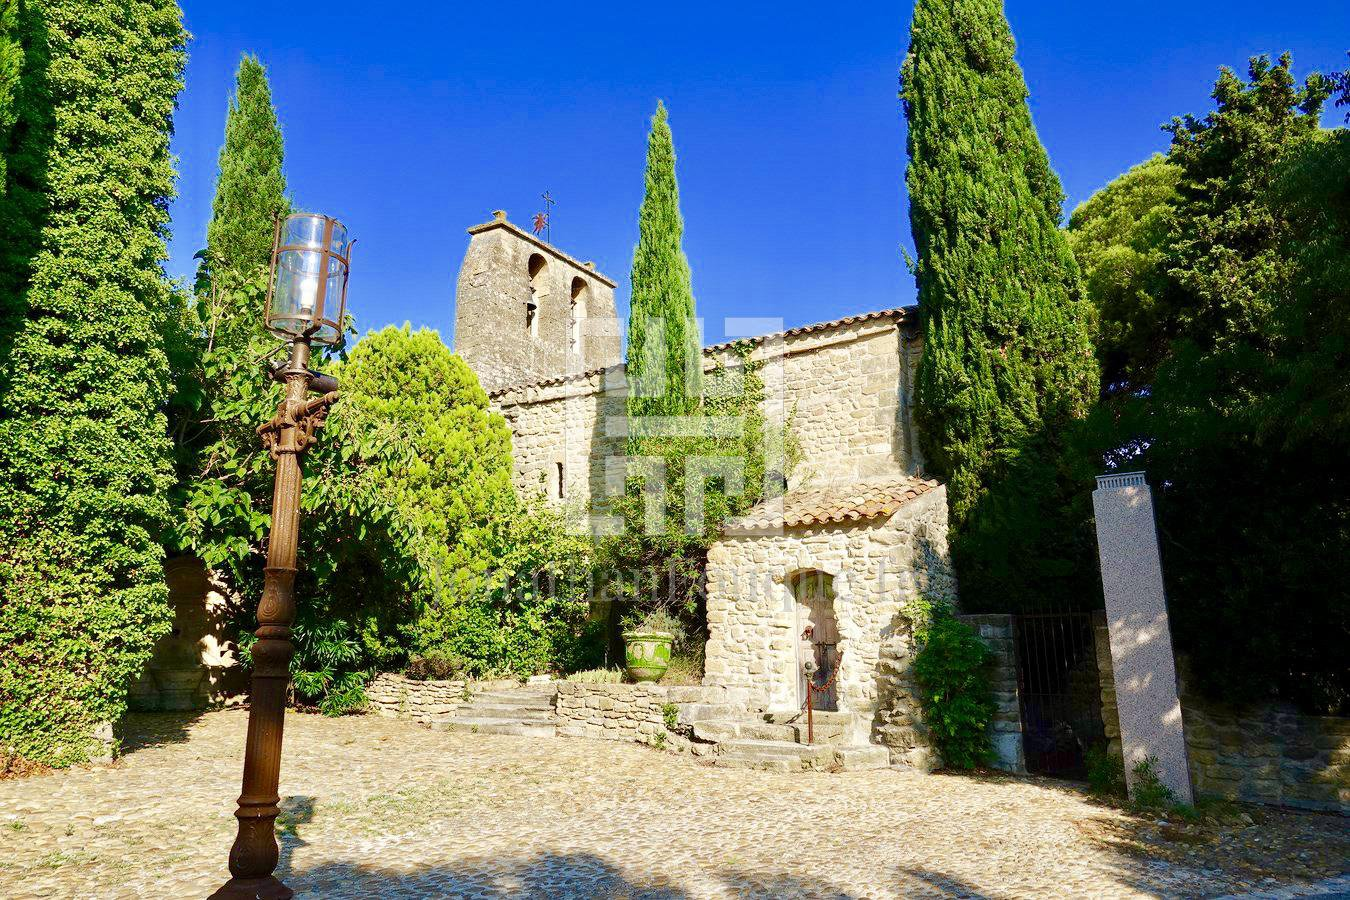 PAYS D'AIX - CHATEAU OF PROVENCE